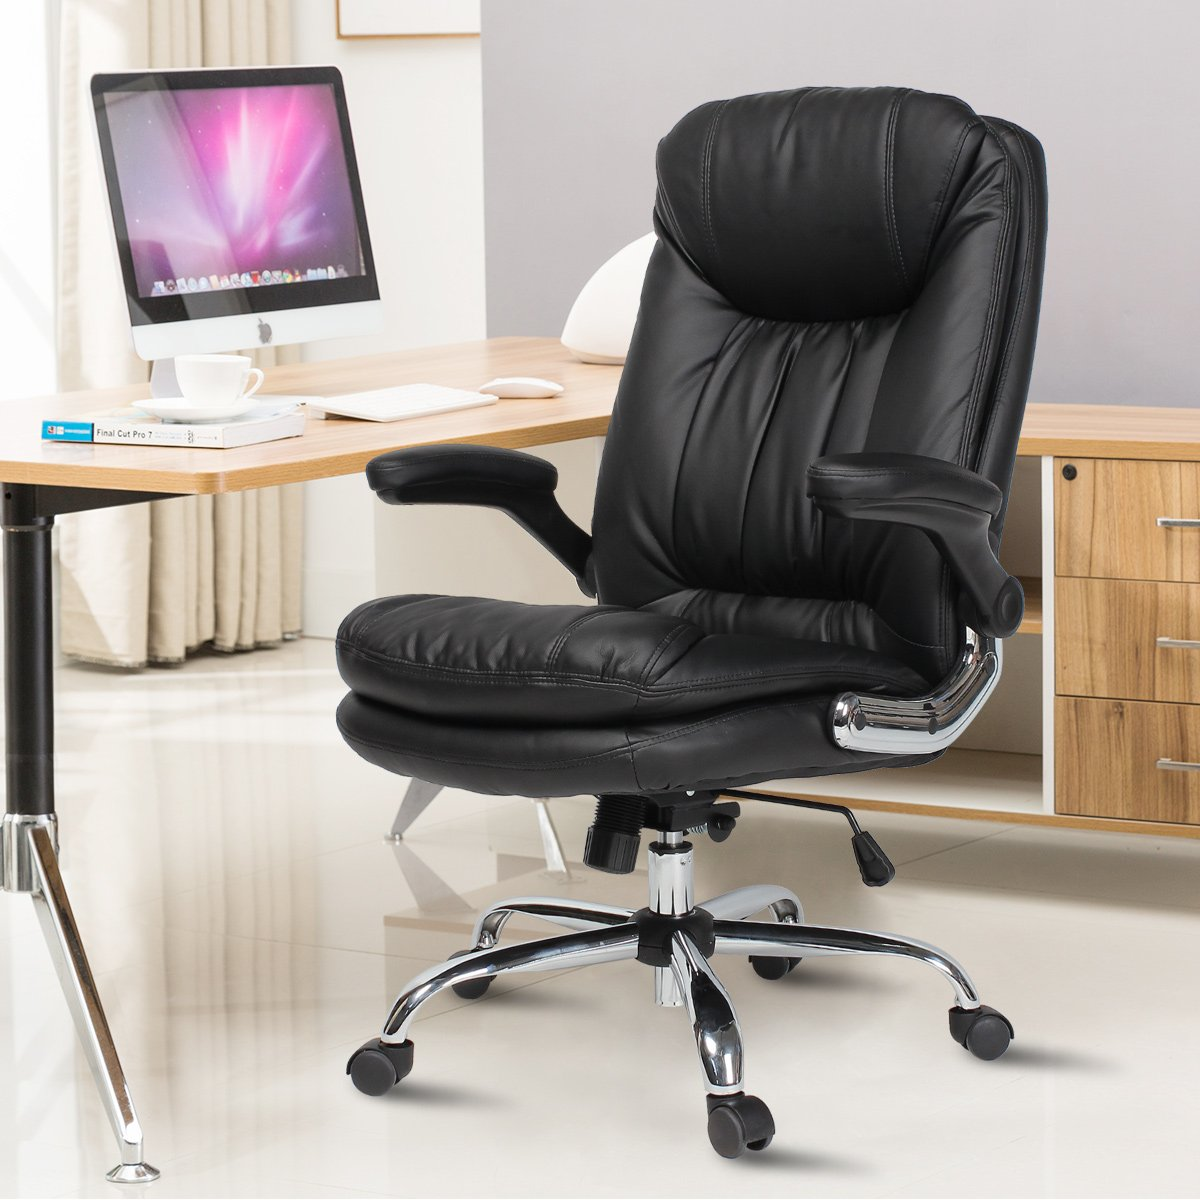 B2C2B Ergonomic Office Chair - High Back Desk Chair with Flip-Up Arms and Comfy Thick Cushion Leather Computer Chair Big and Tall 350lb Weight Capacity, Black by B2C2B